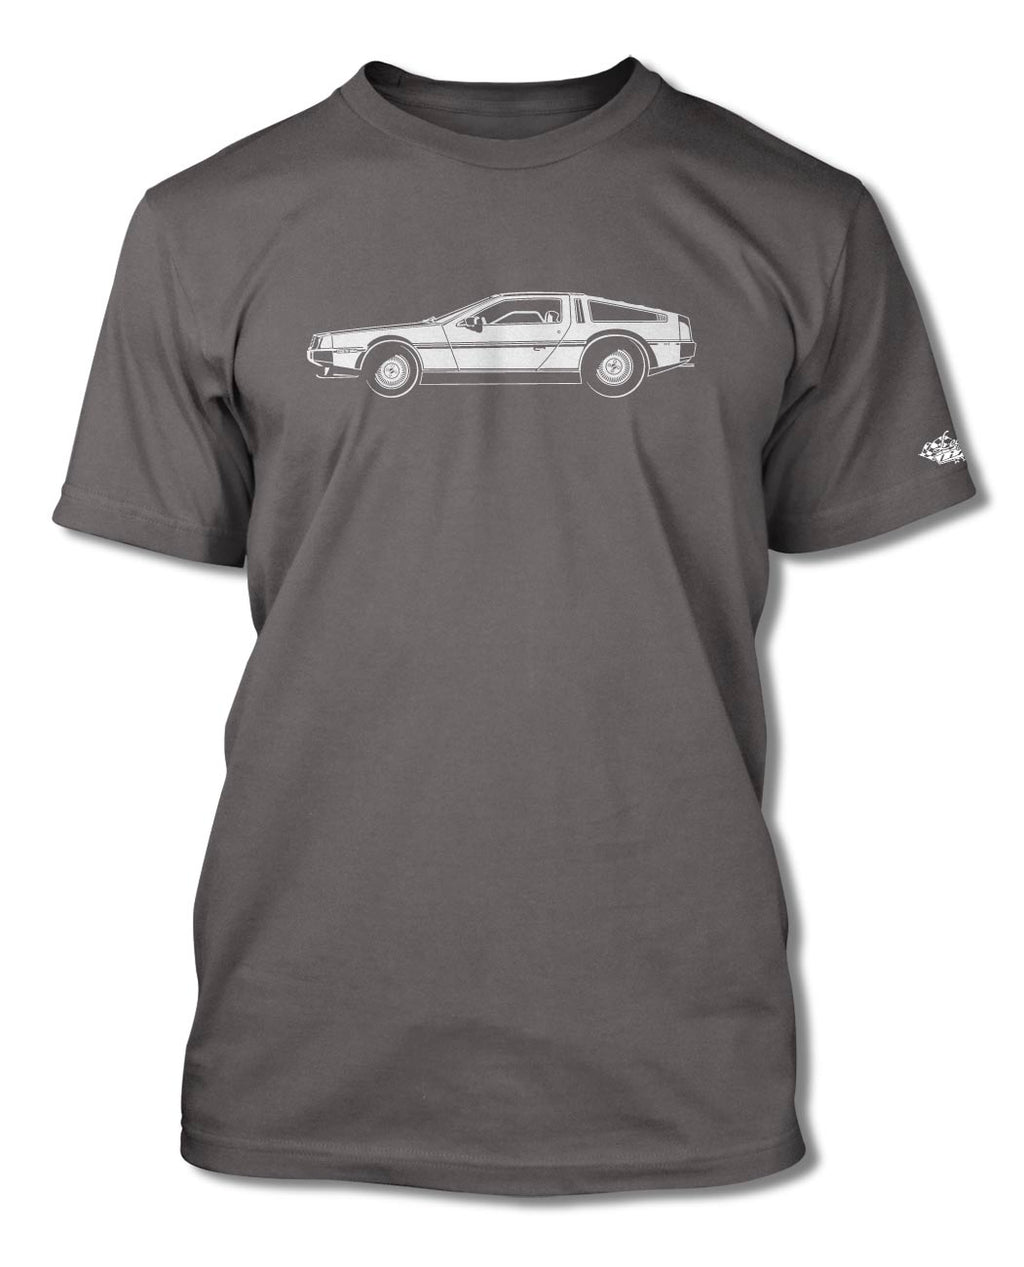 1981 DeLorean DMC-12 Coupe T-Shirt - Men - Side View